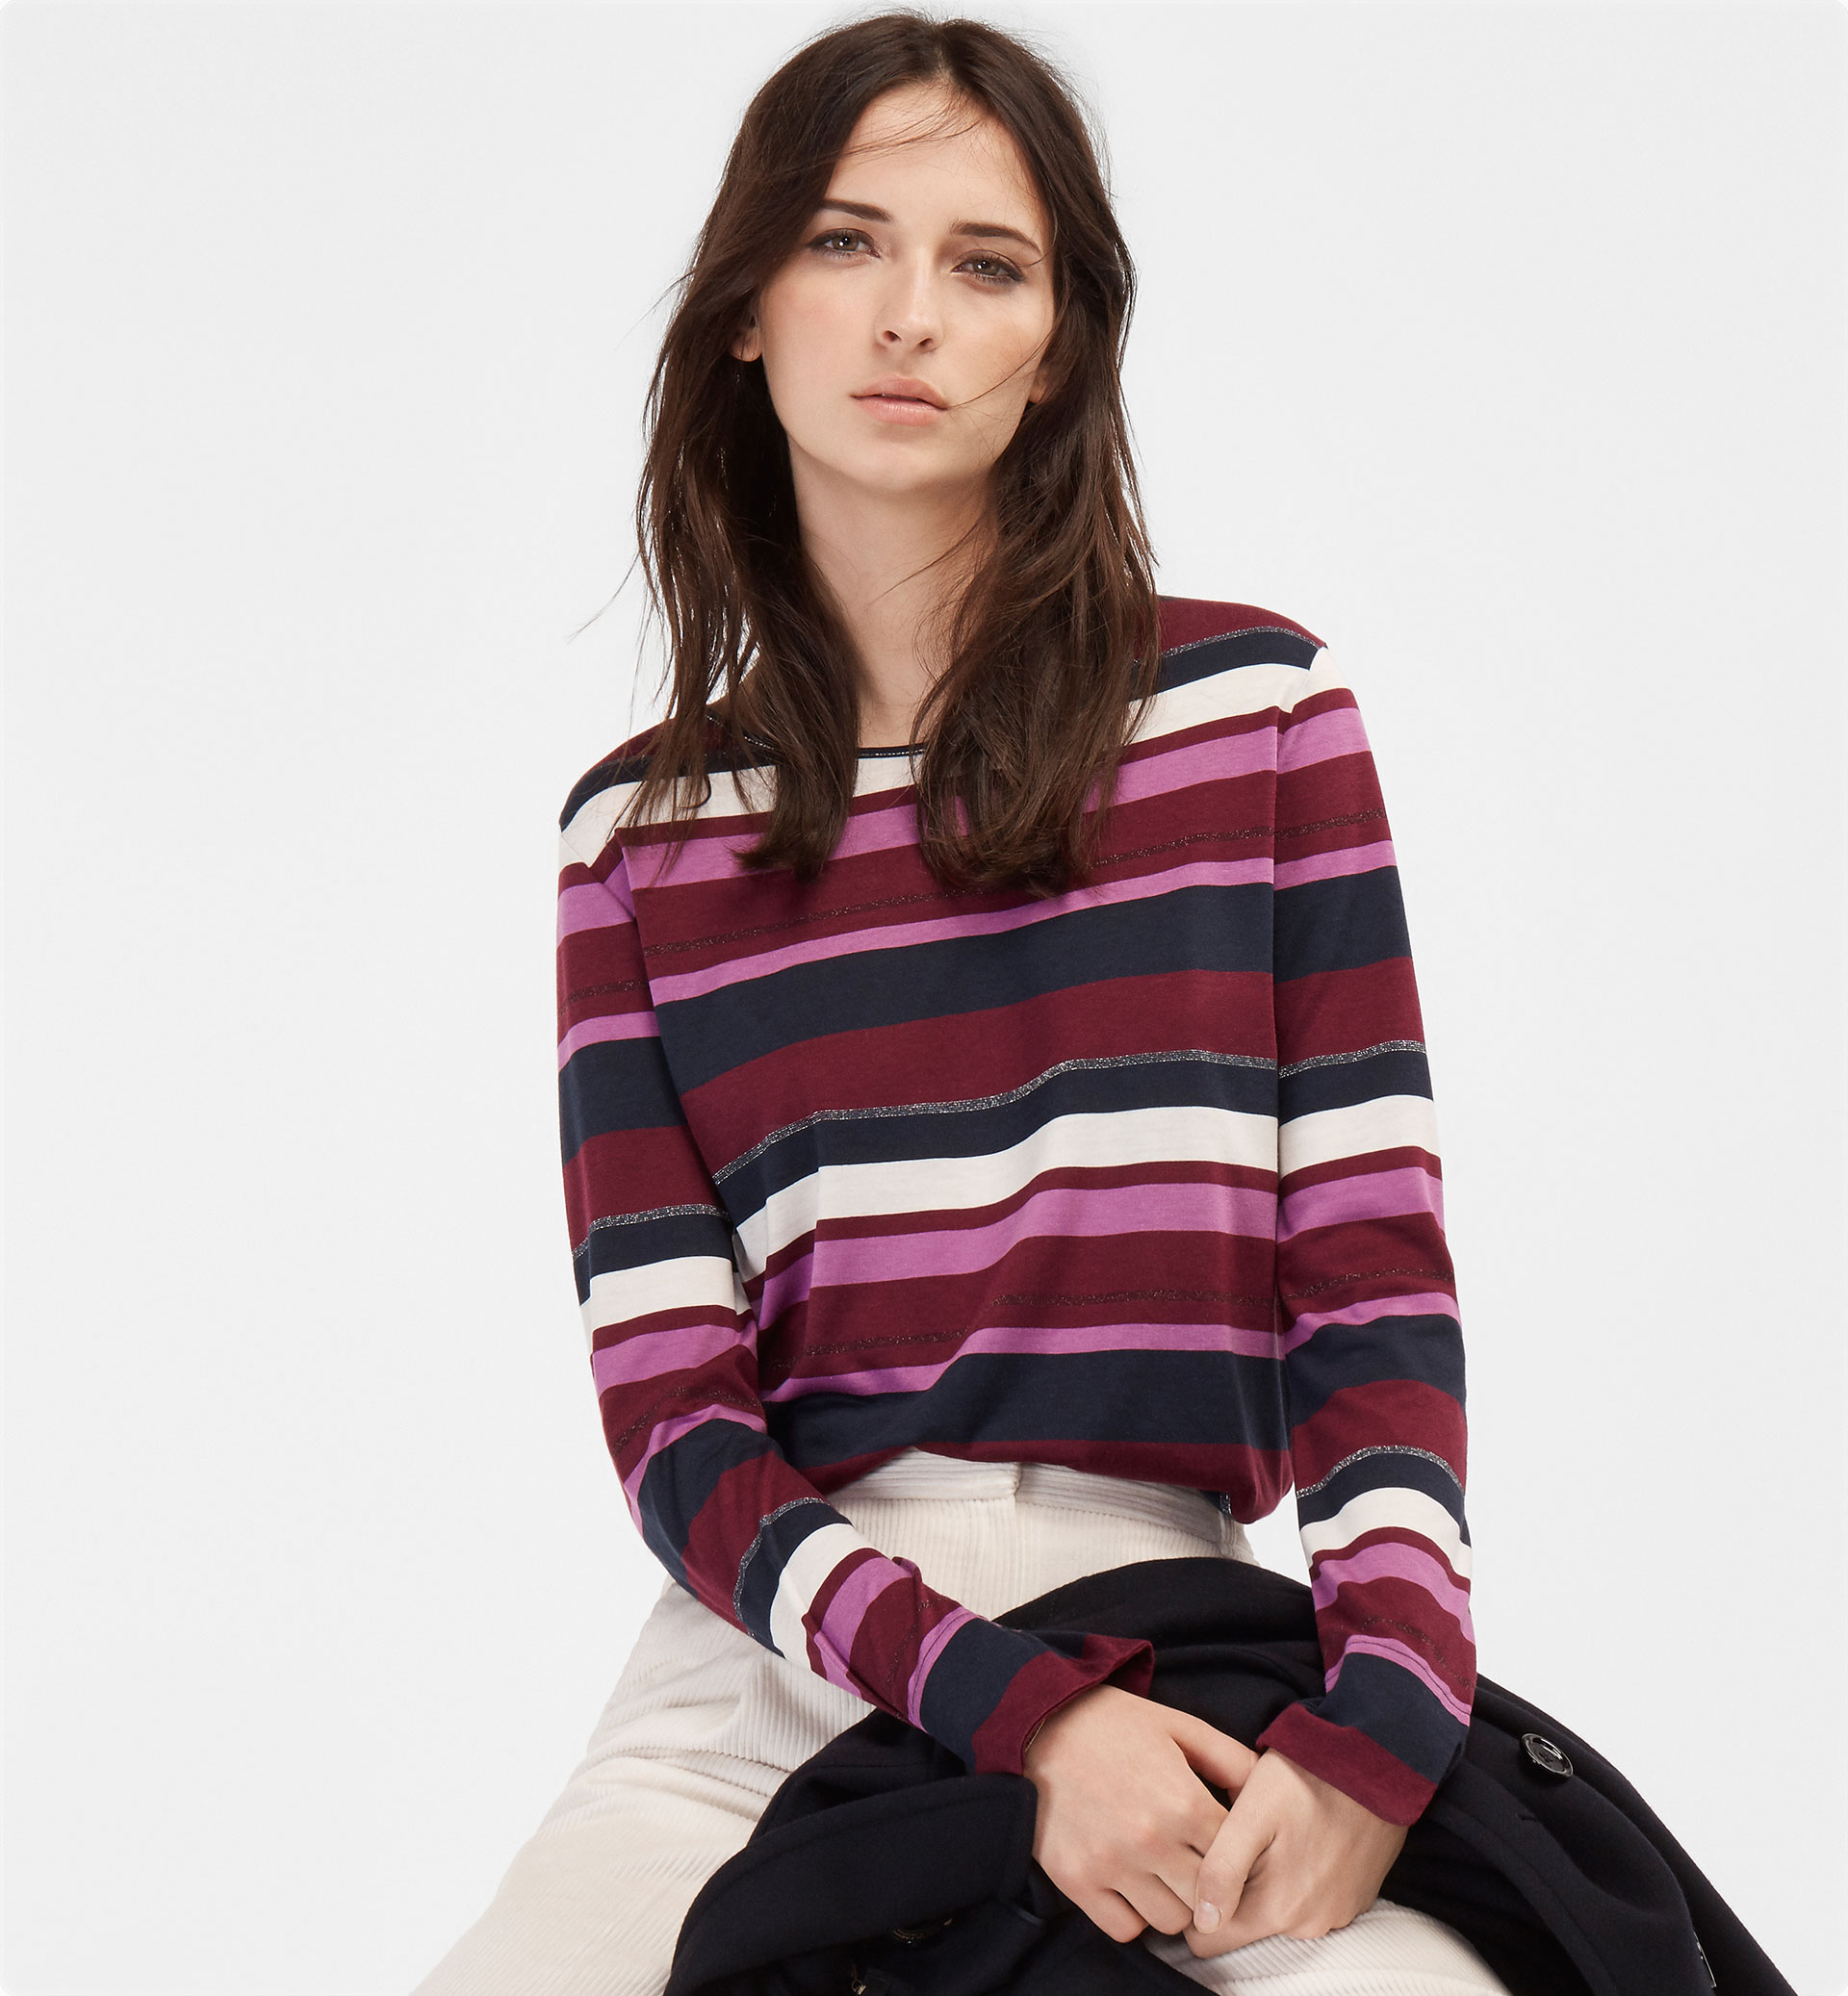 T-SHIRT WITH A STRIPED DETAIL